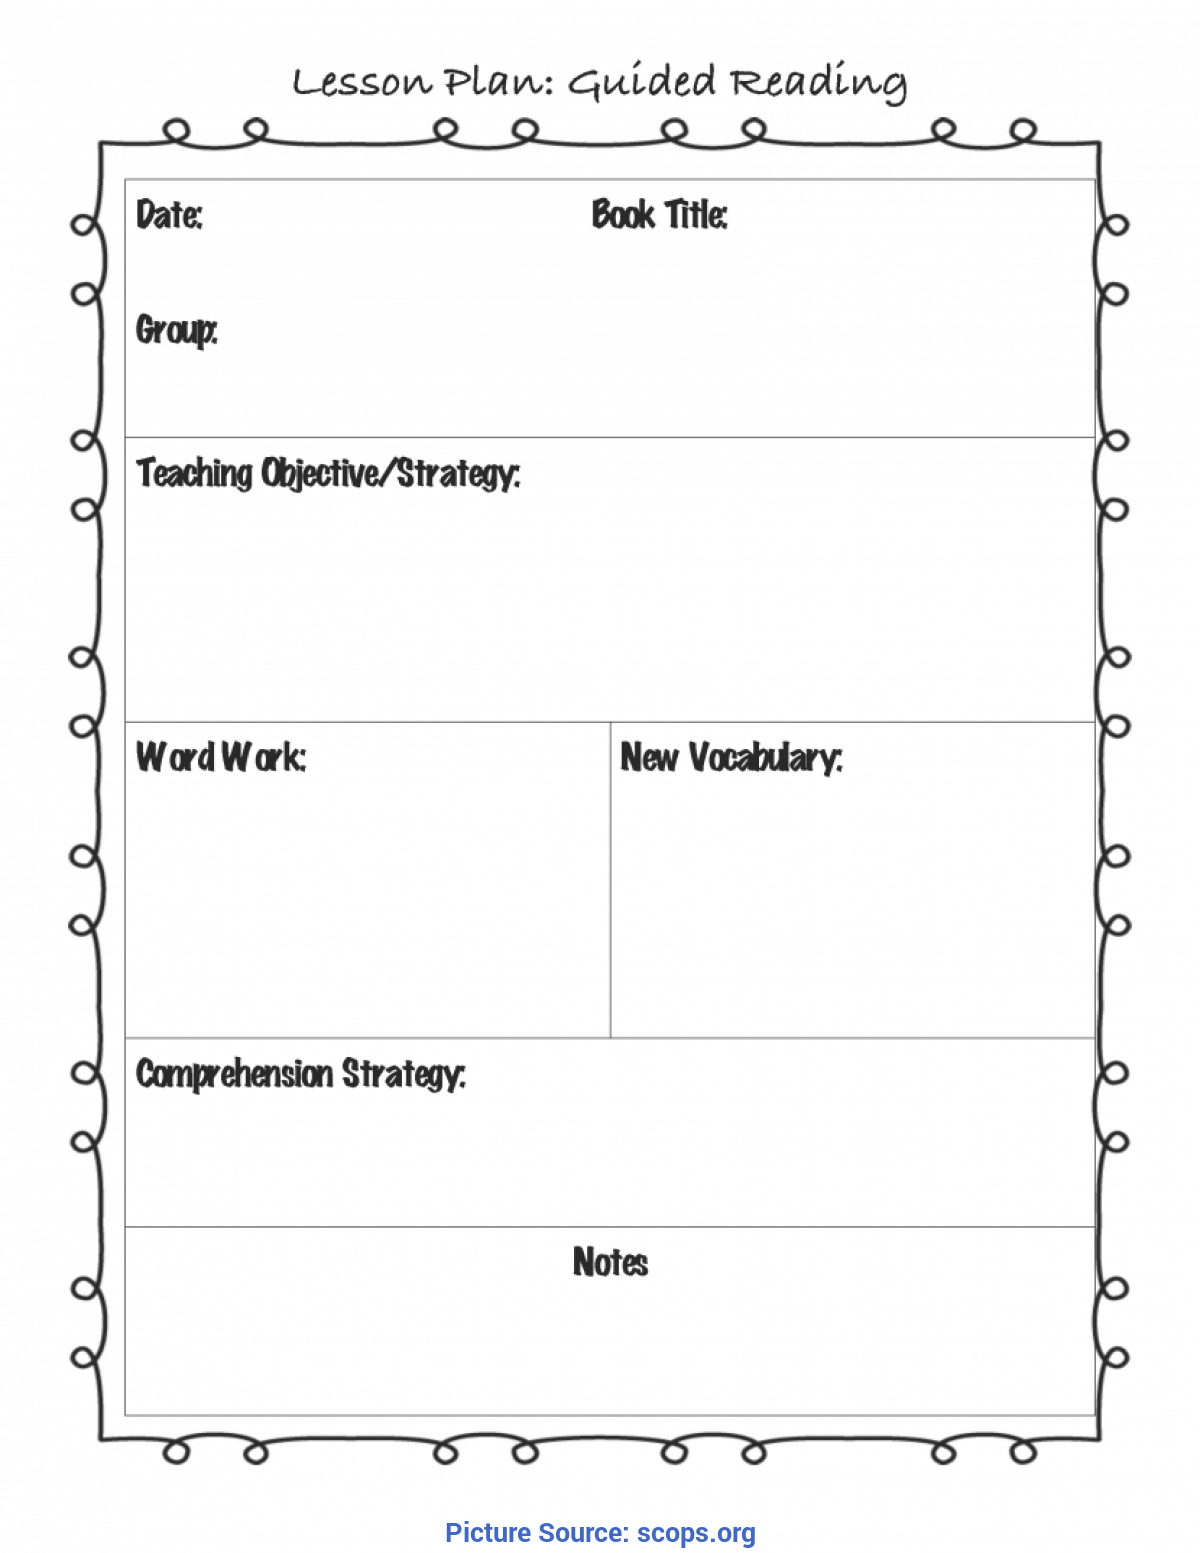 Special Reading Lesson Plan Preschool Worksheet Printable